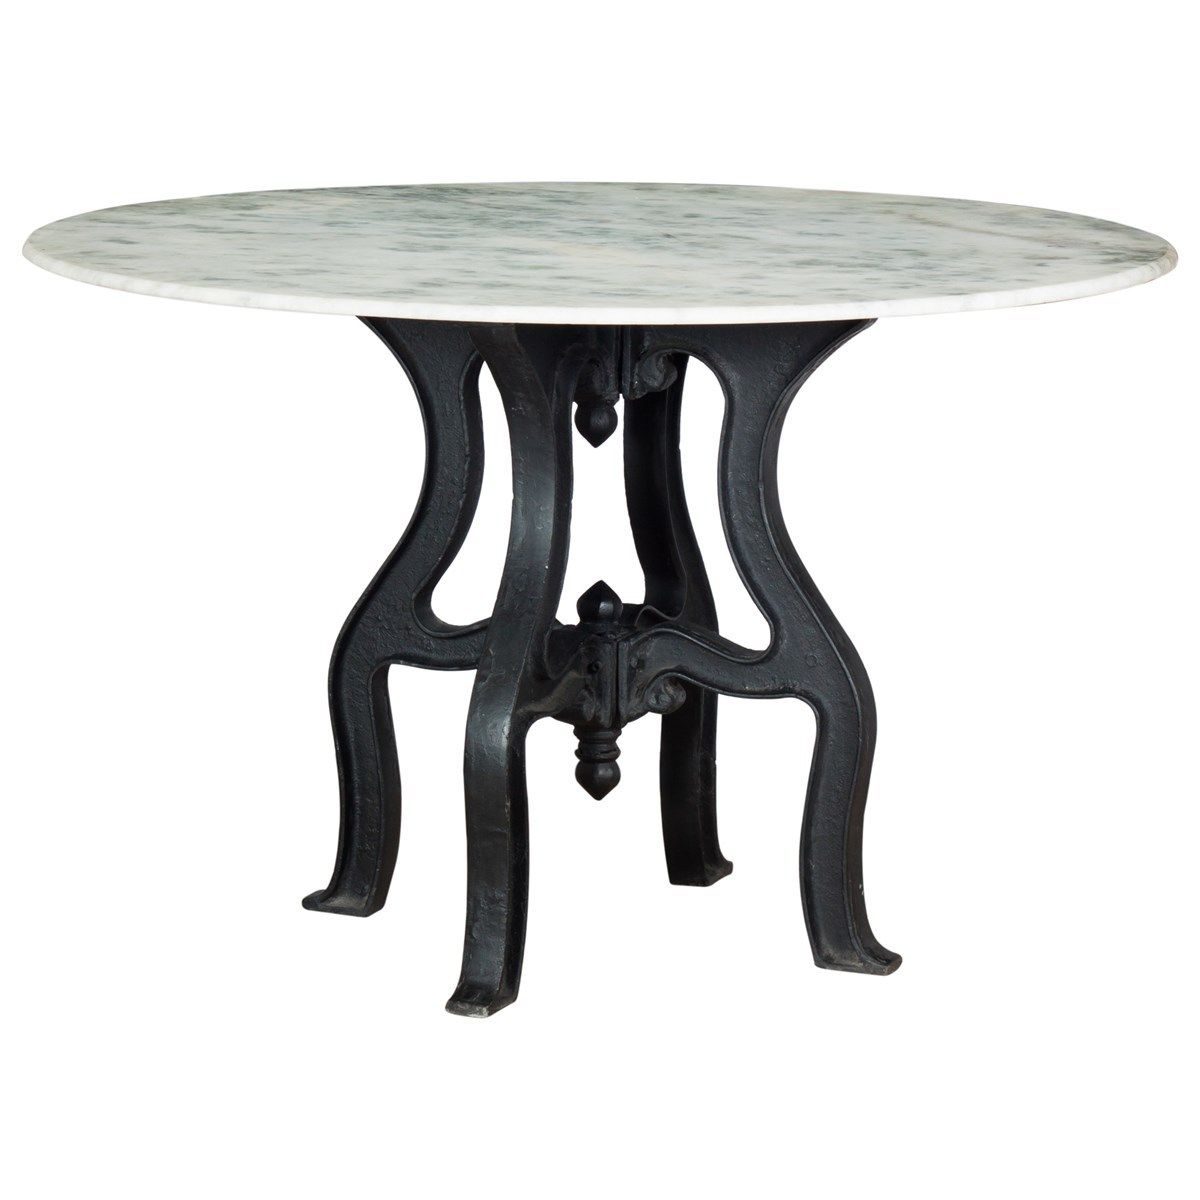 alondra classic cast iron marble round dining table round dining tables round dining and dining tables: round white marble dining table